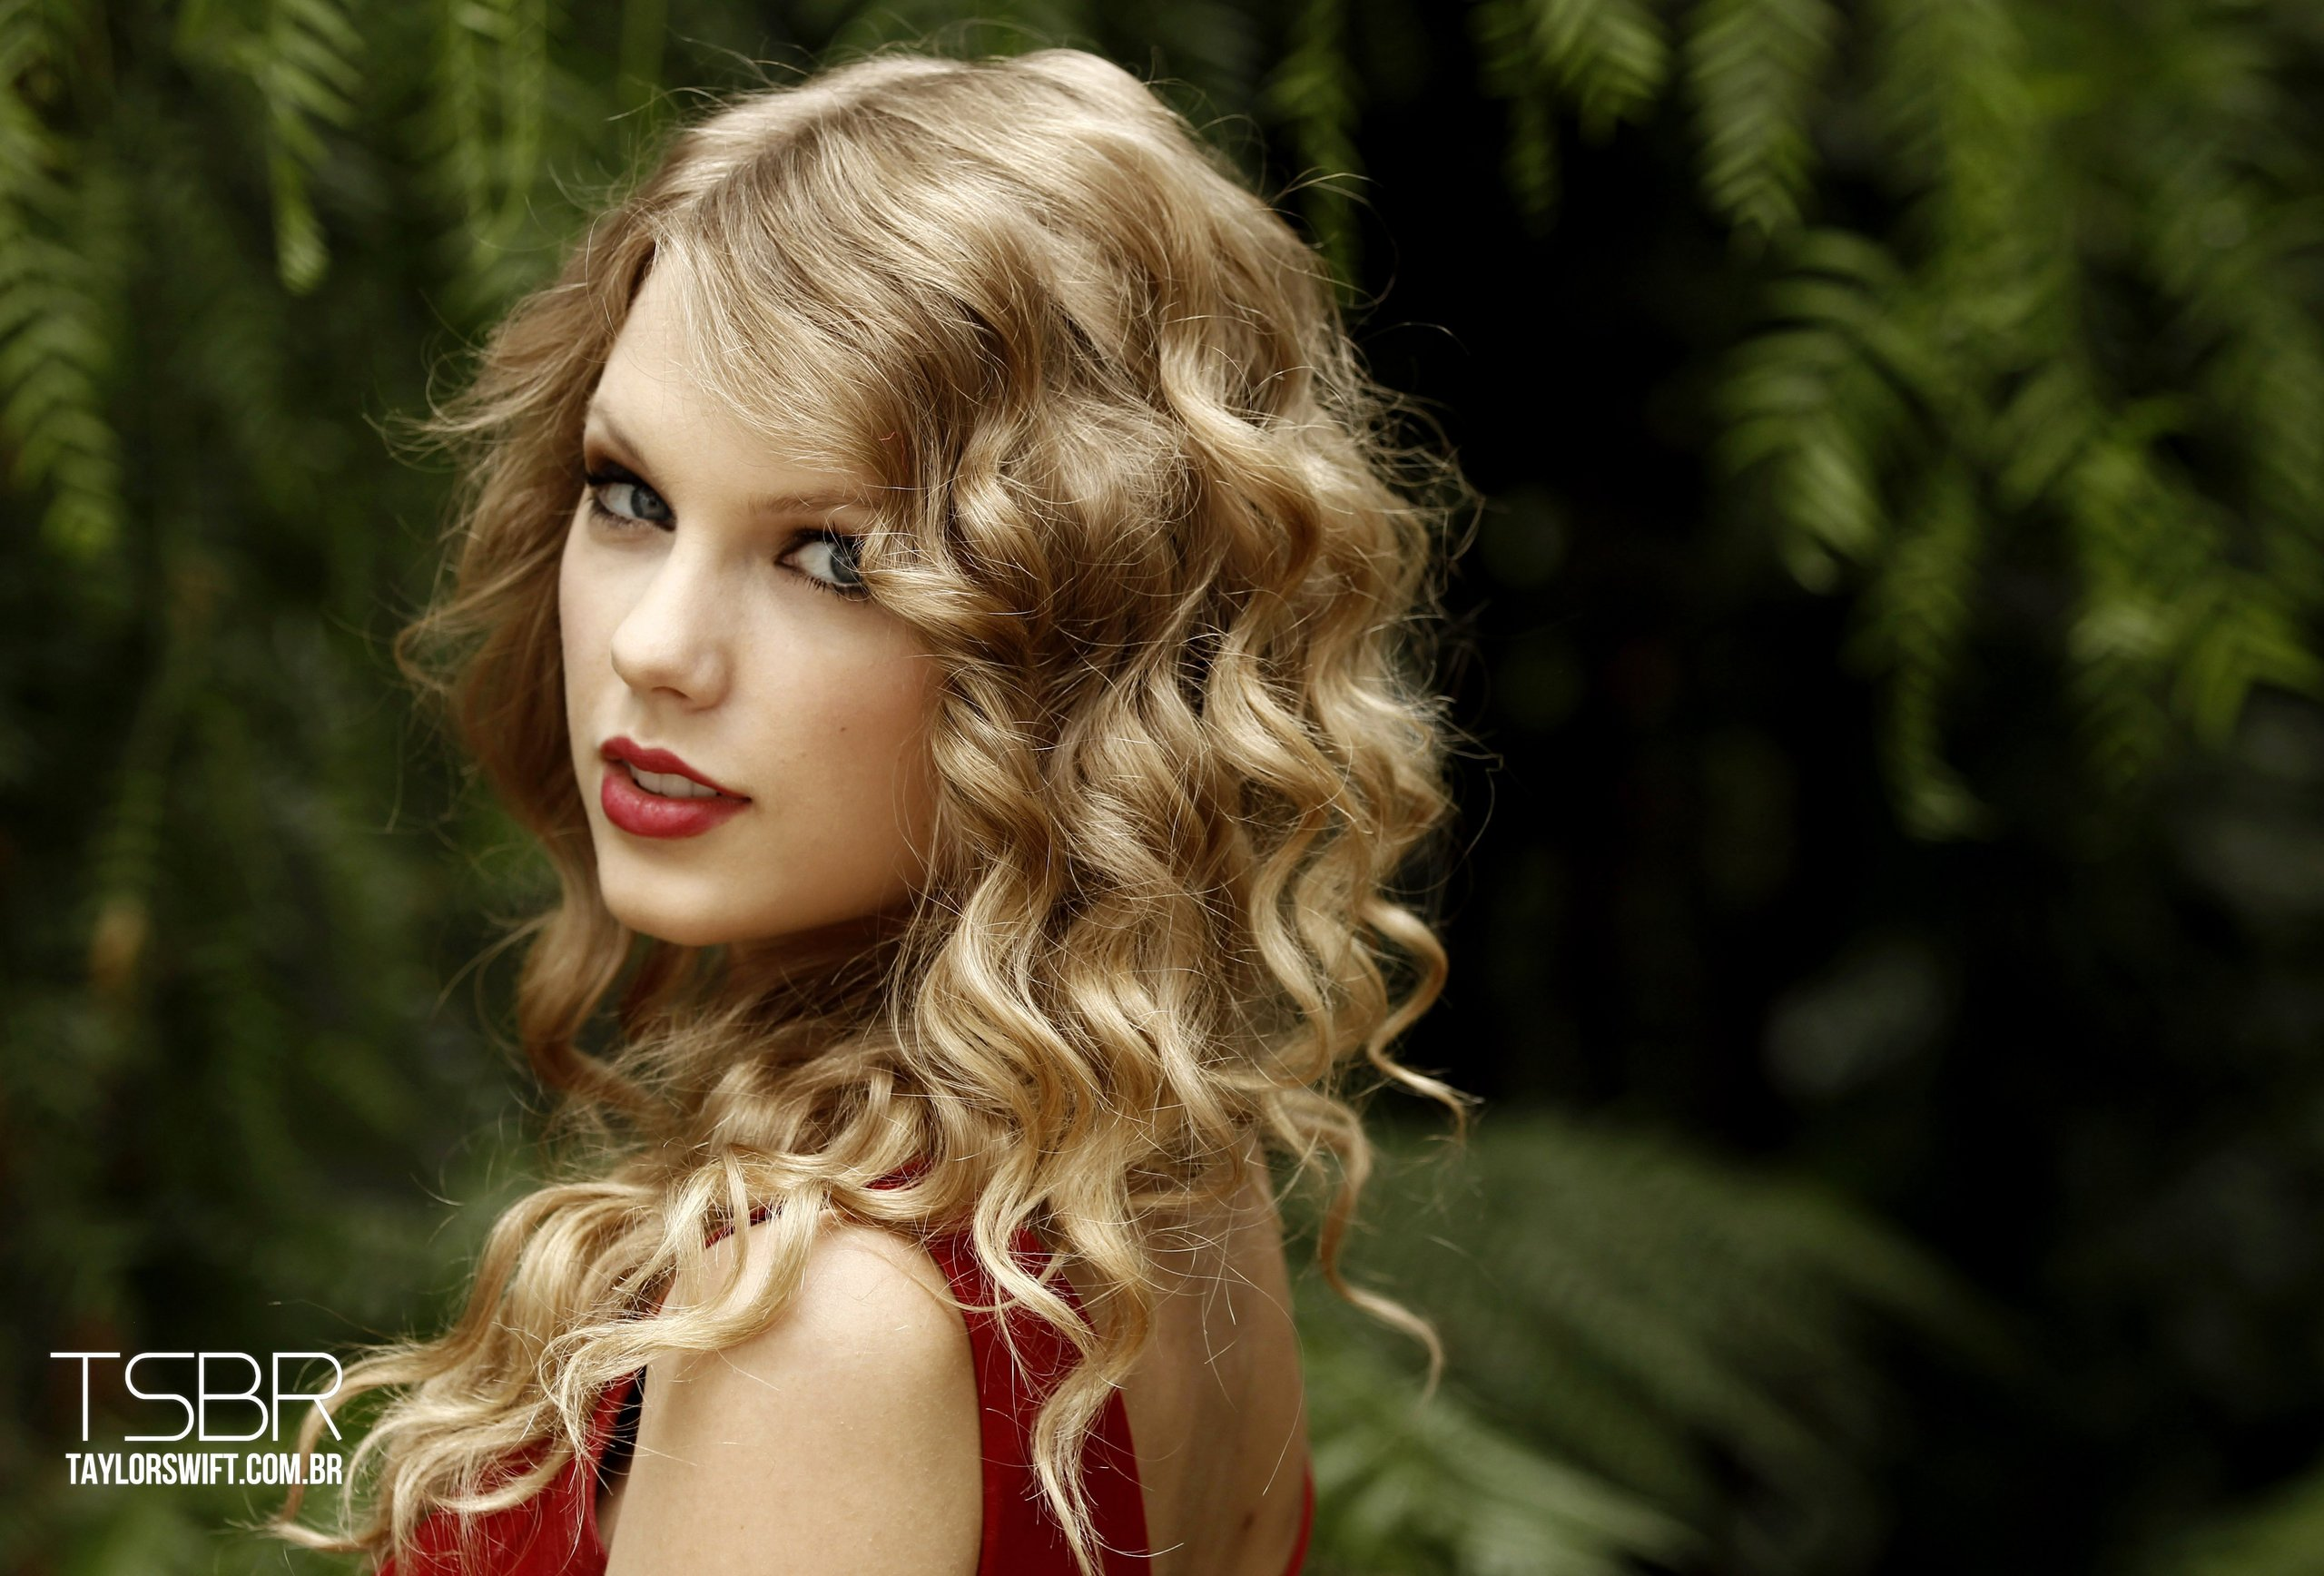 Taylor Swift images Taylor Swift HD wallpaper and background photos (16433067)